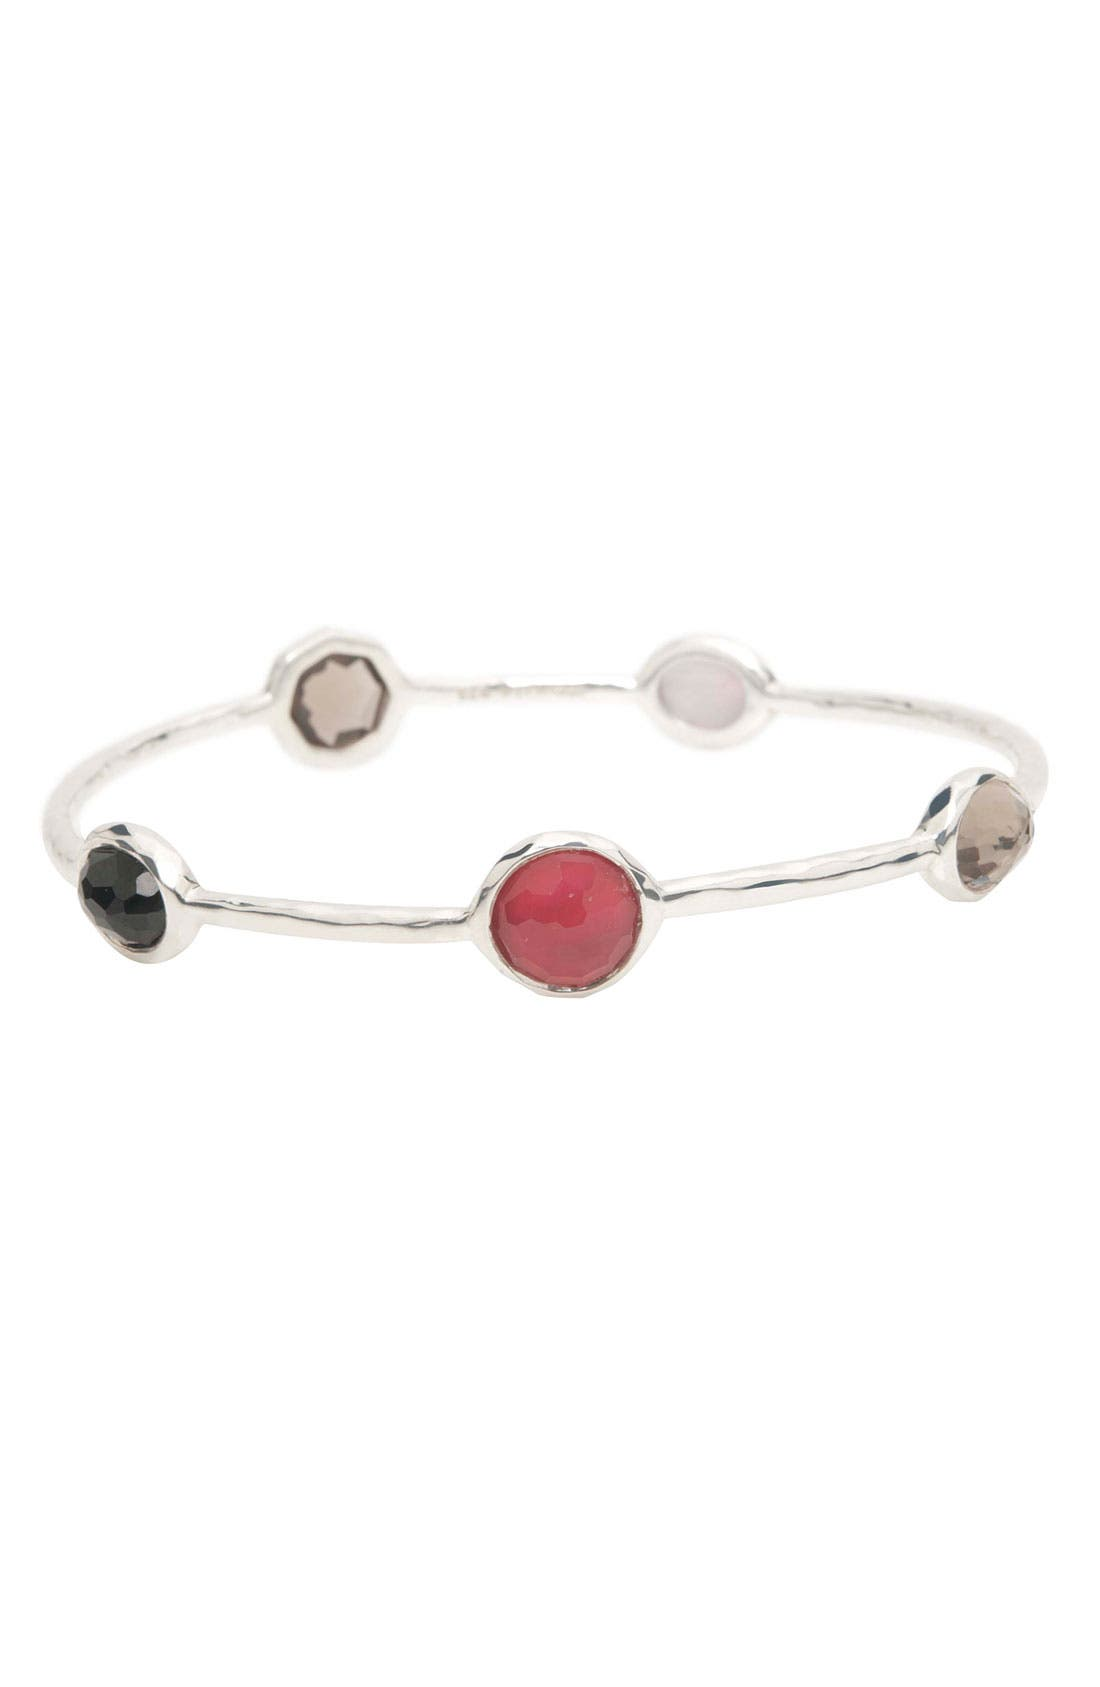 5-Stone Bangle,                         Main,                         color, Sterling Silver